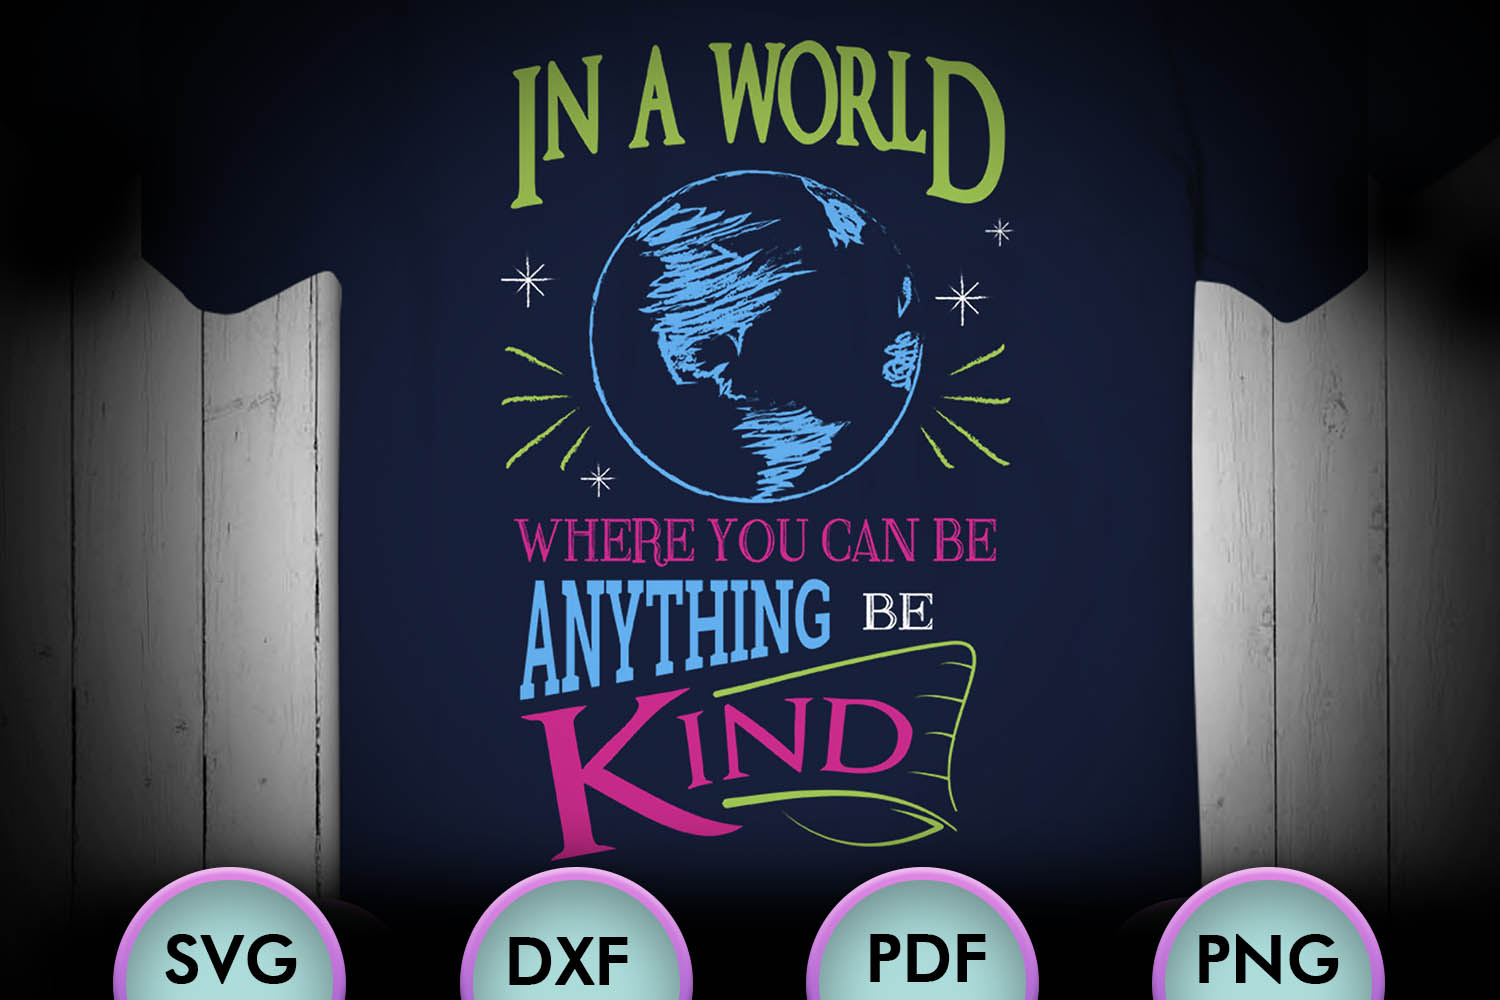 In A World Where You Can Be Anything Be Kind, SVG Design example image 1